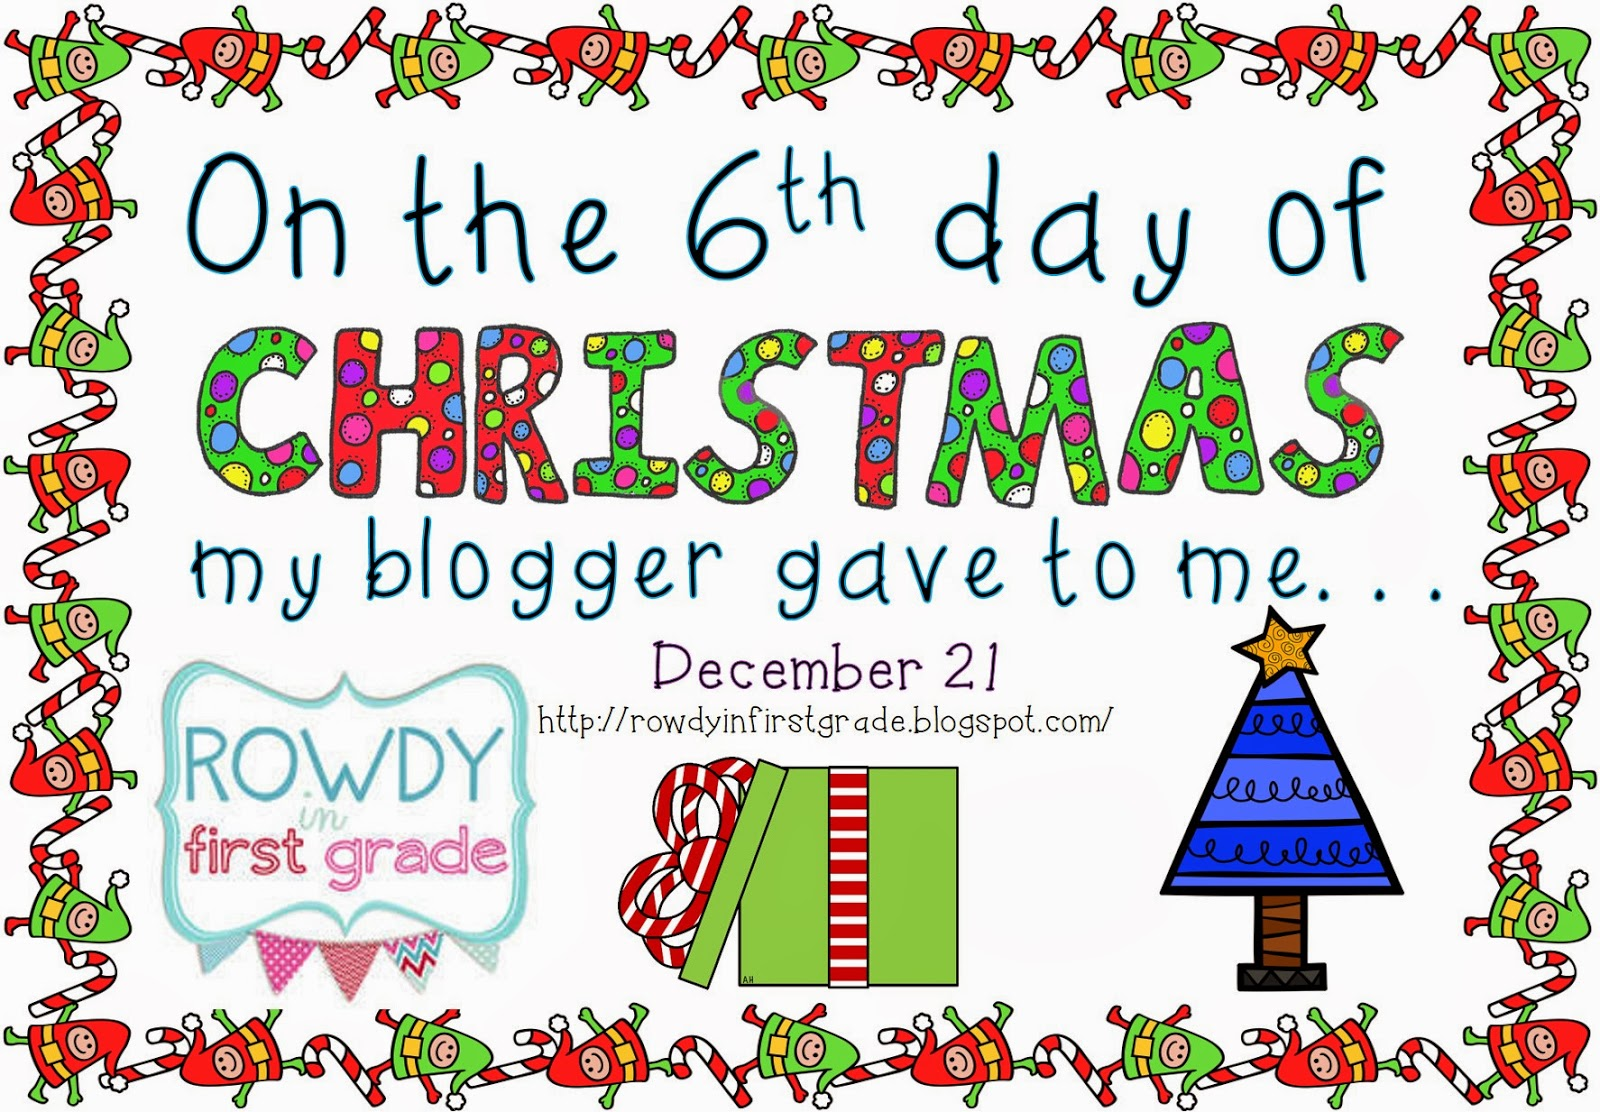 Granny Goes to School: 9 Days of Christmas: Day 6